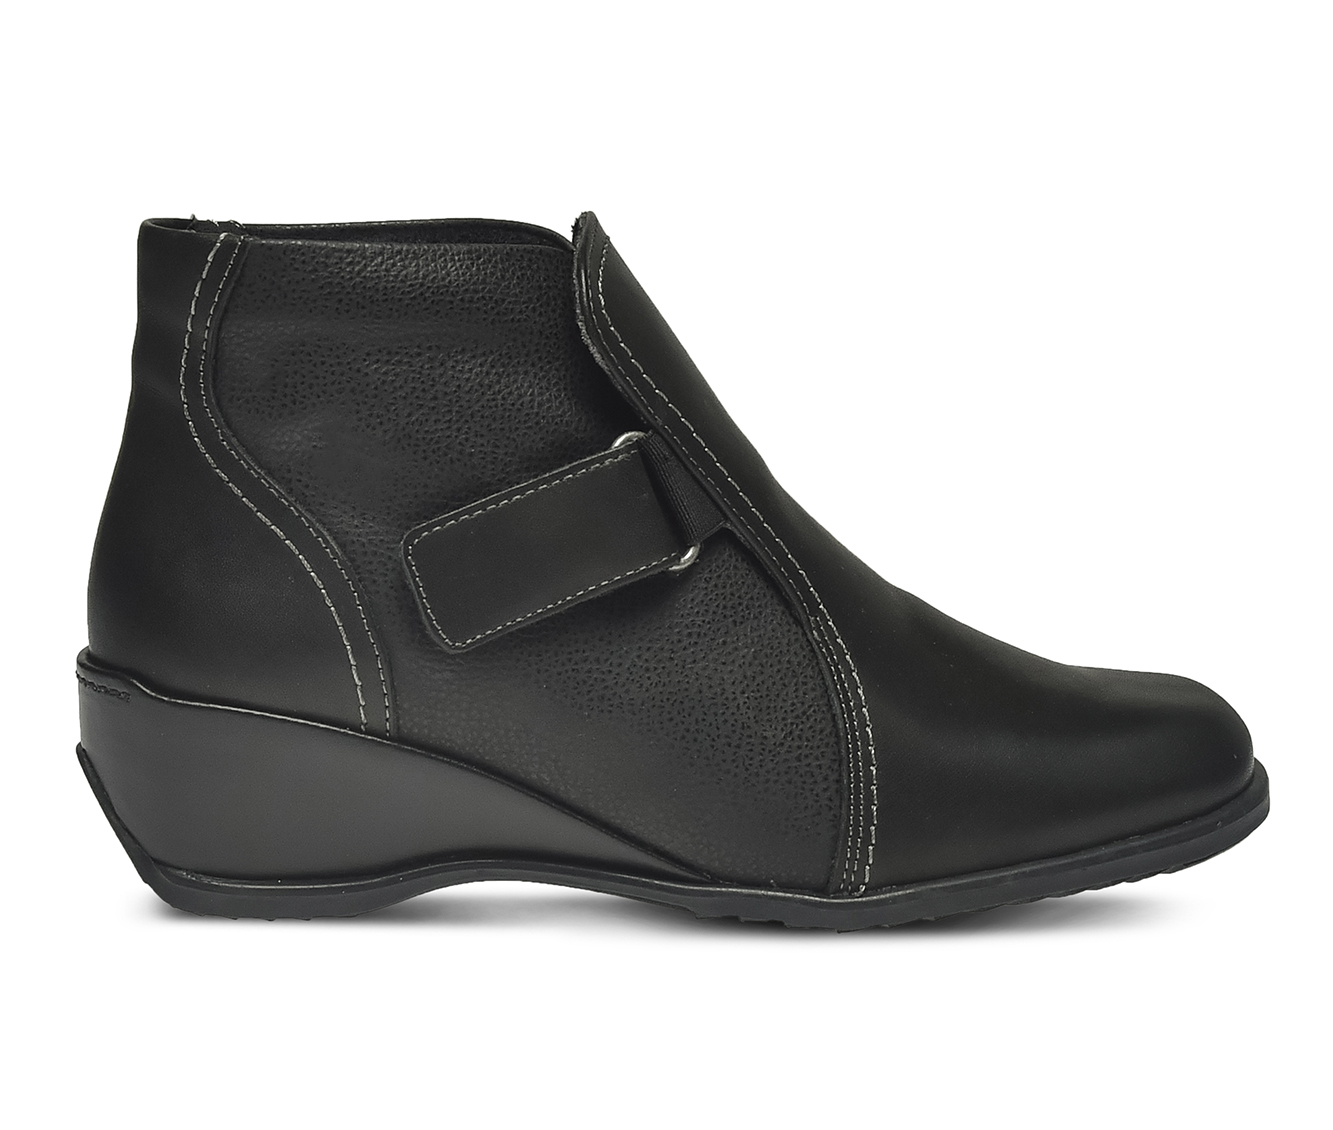 SPRING STEP Andrea Women's Boots (Black Leather)